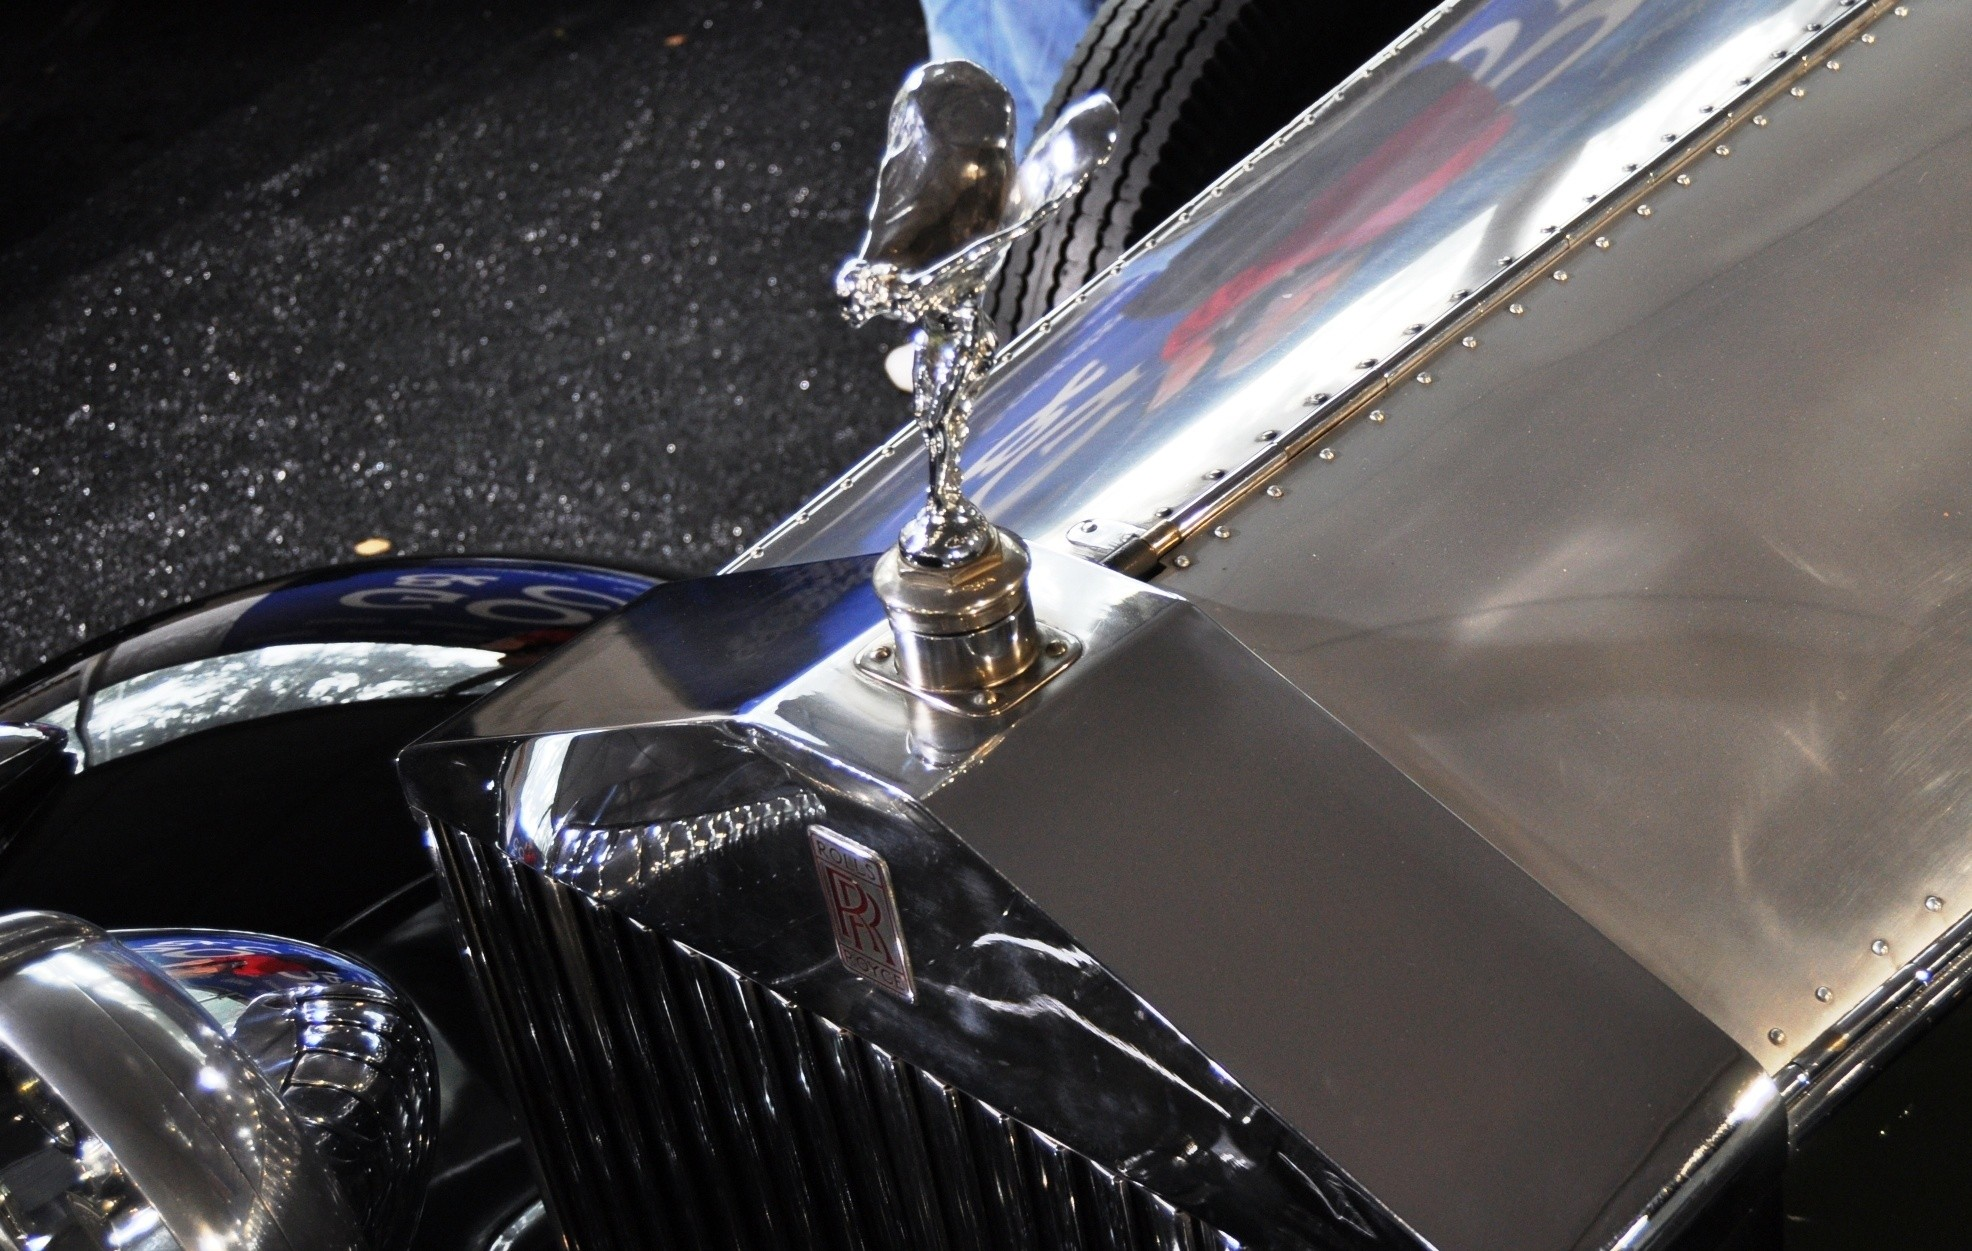 Coolest Vintage Hood Ornaments -- RM Auctions Amelia Island 2014 -- Pierce-Arrow, Cadillac, Stutz, Chrysler, Ford, Aston-Martin, Bentley and More 2